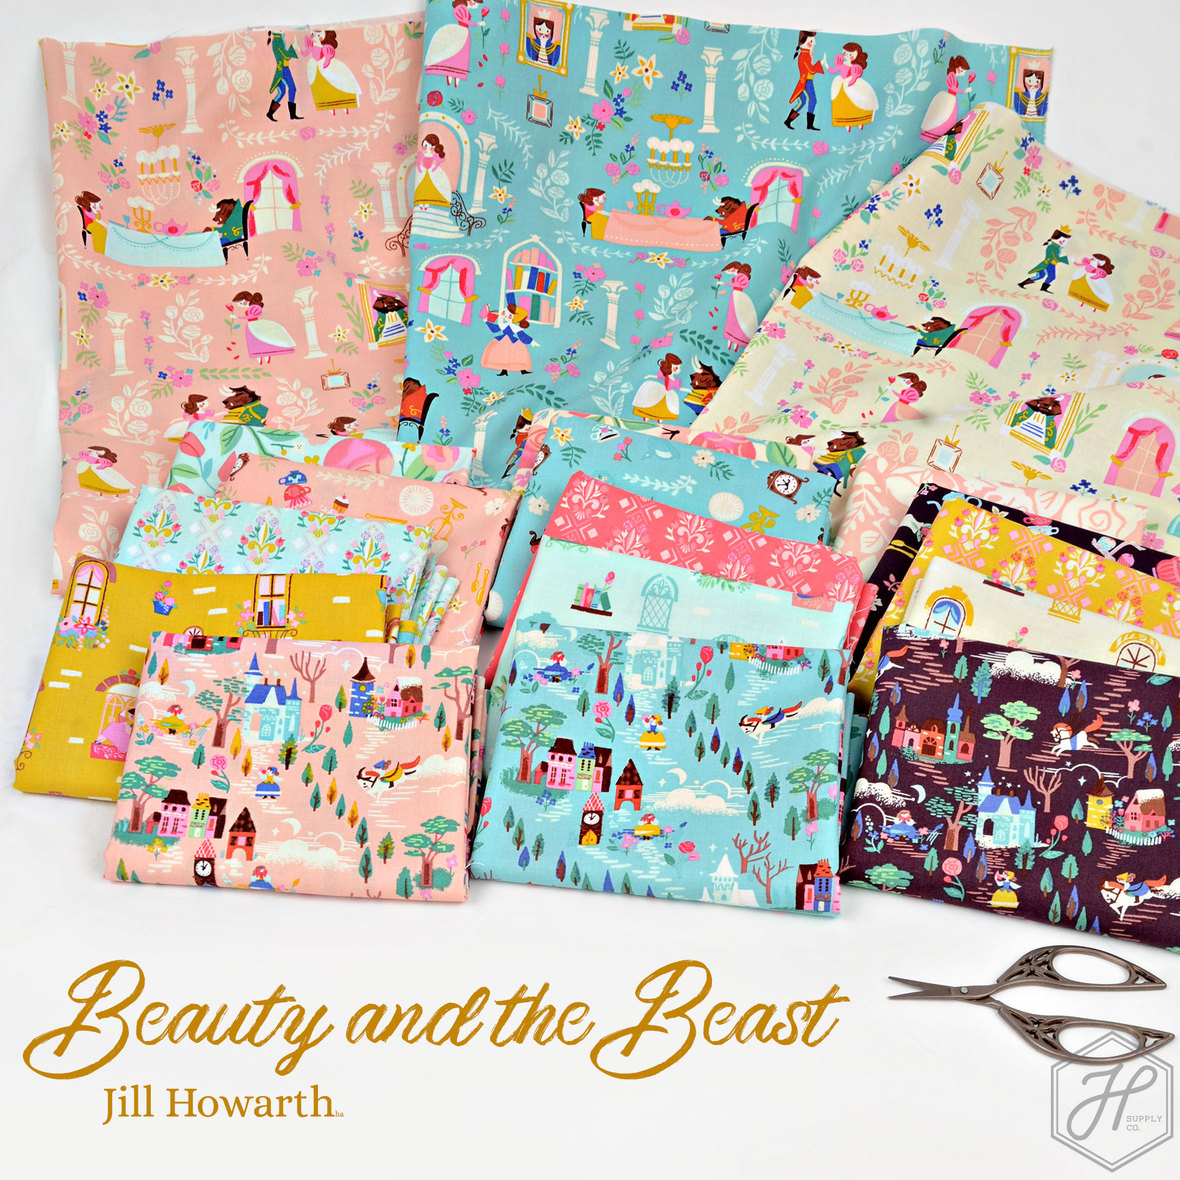 Beauty-and-the-Beast-Fabric-Poster-Riley-Blake-at-Hawthorne-Supply-Co